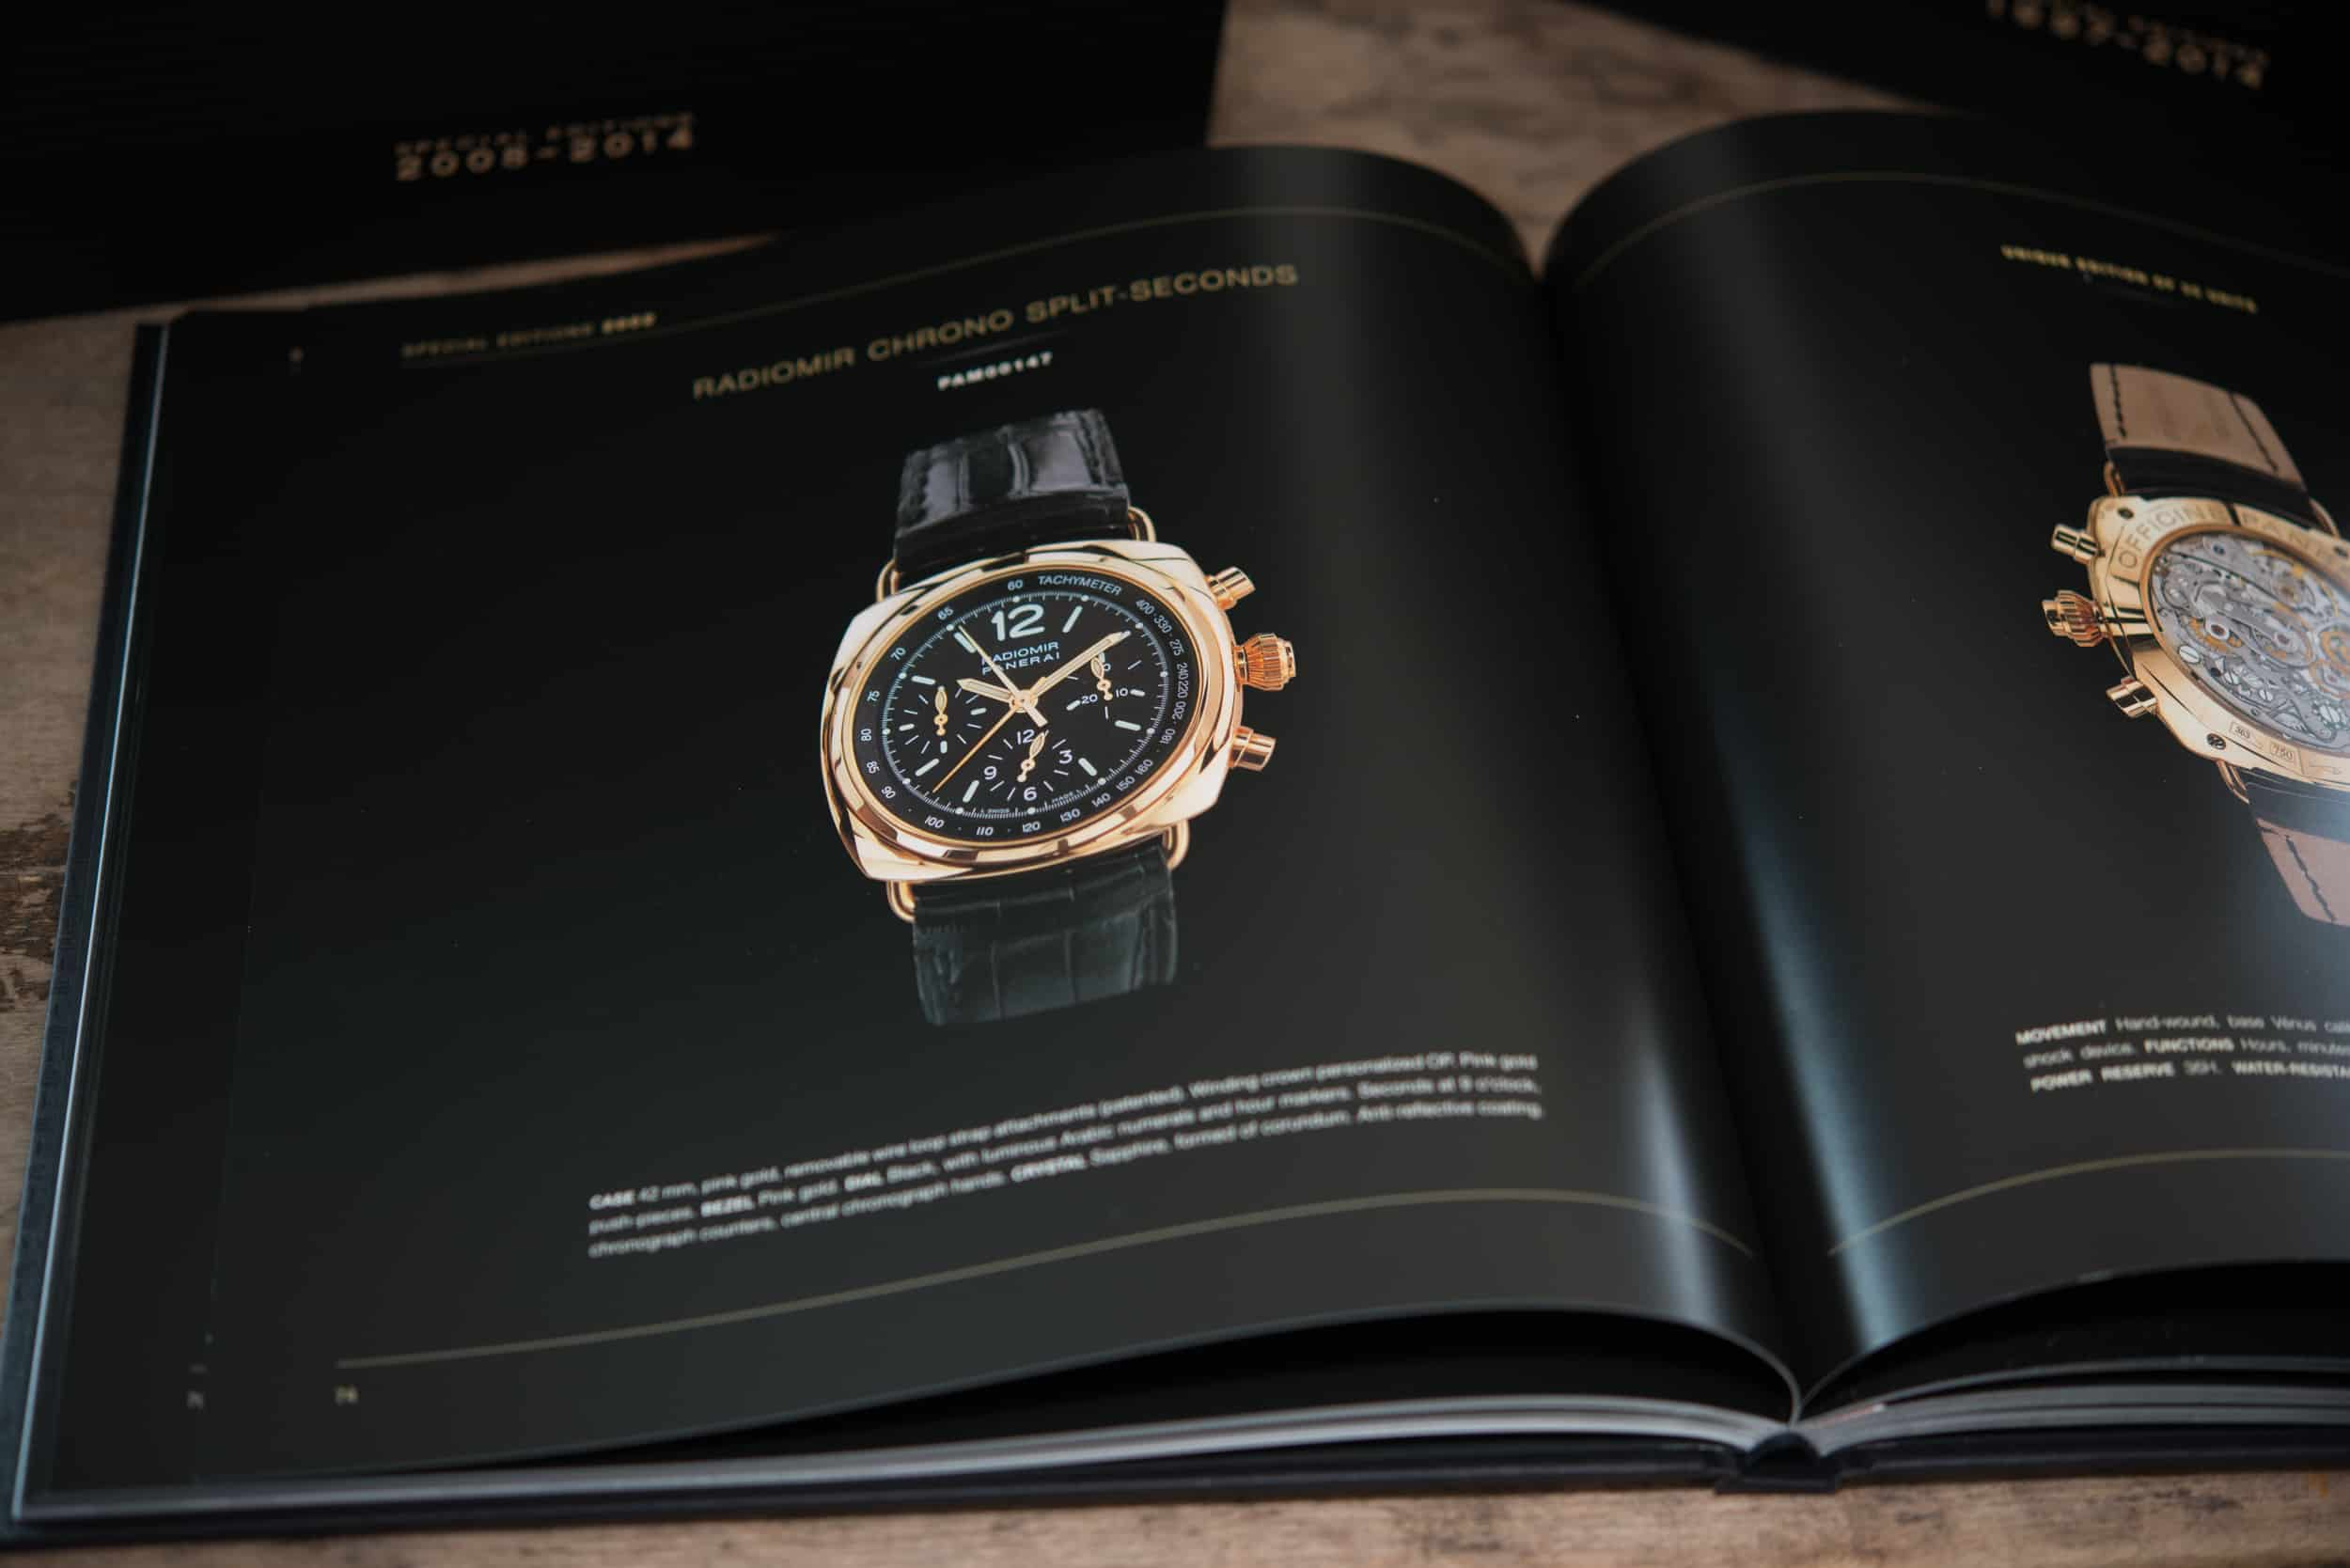 Panerai Giveaway - Panerai Special Editions 1997 - 2014 Book